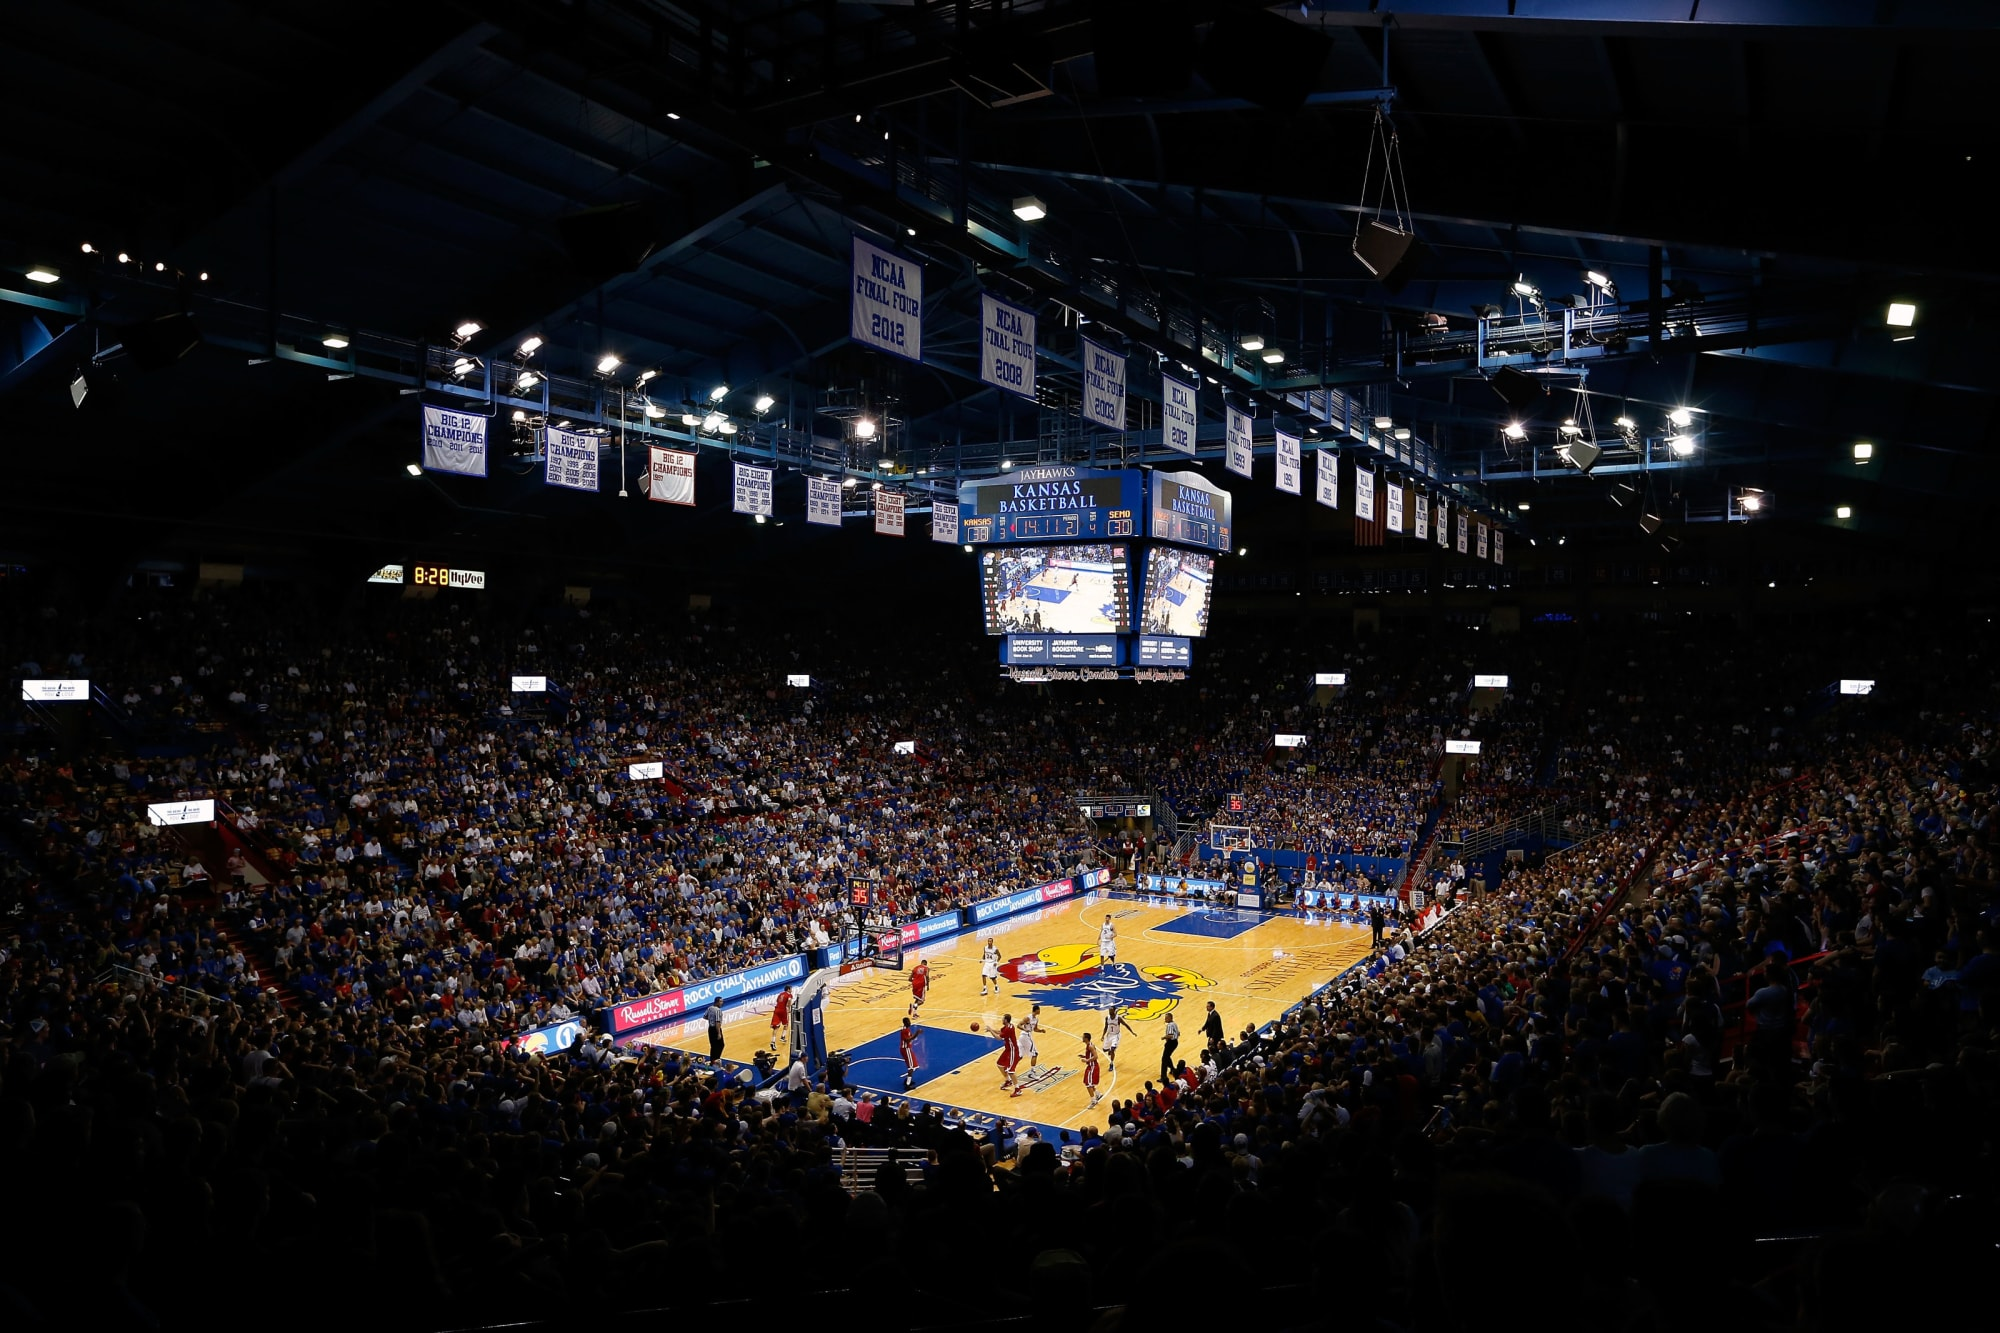 Kansas basketball: Allen Fieldhouse will run this season at limited capacity